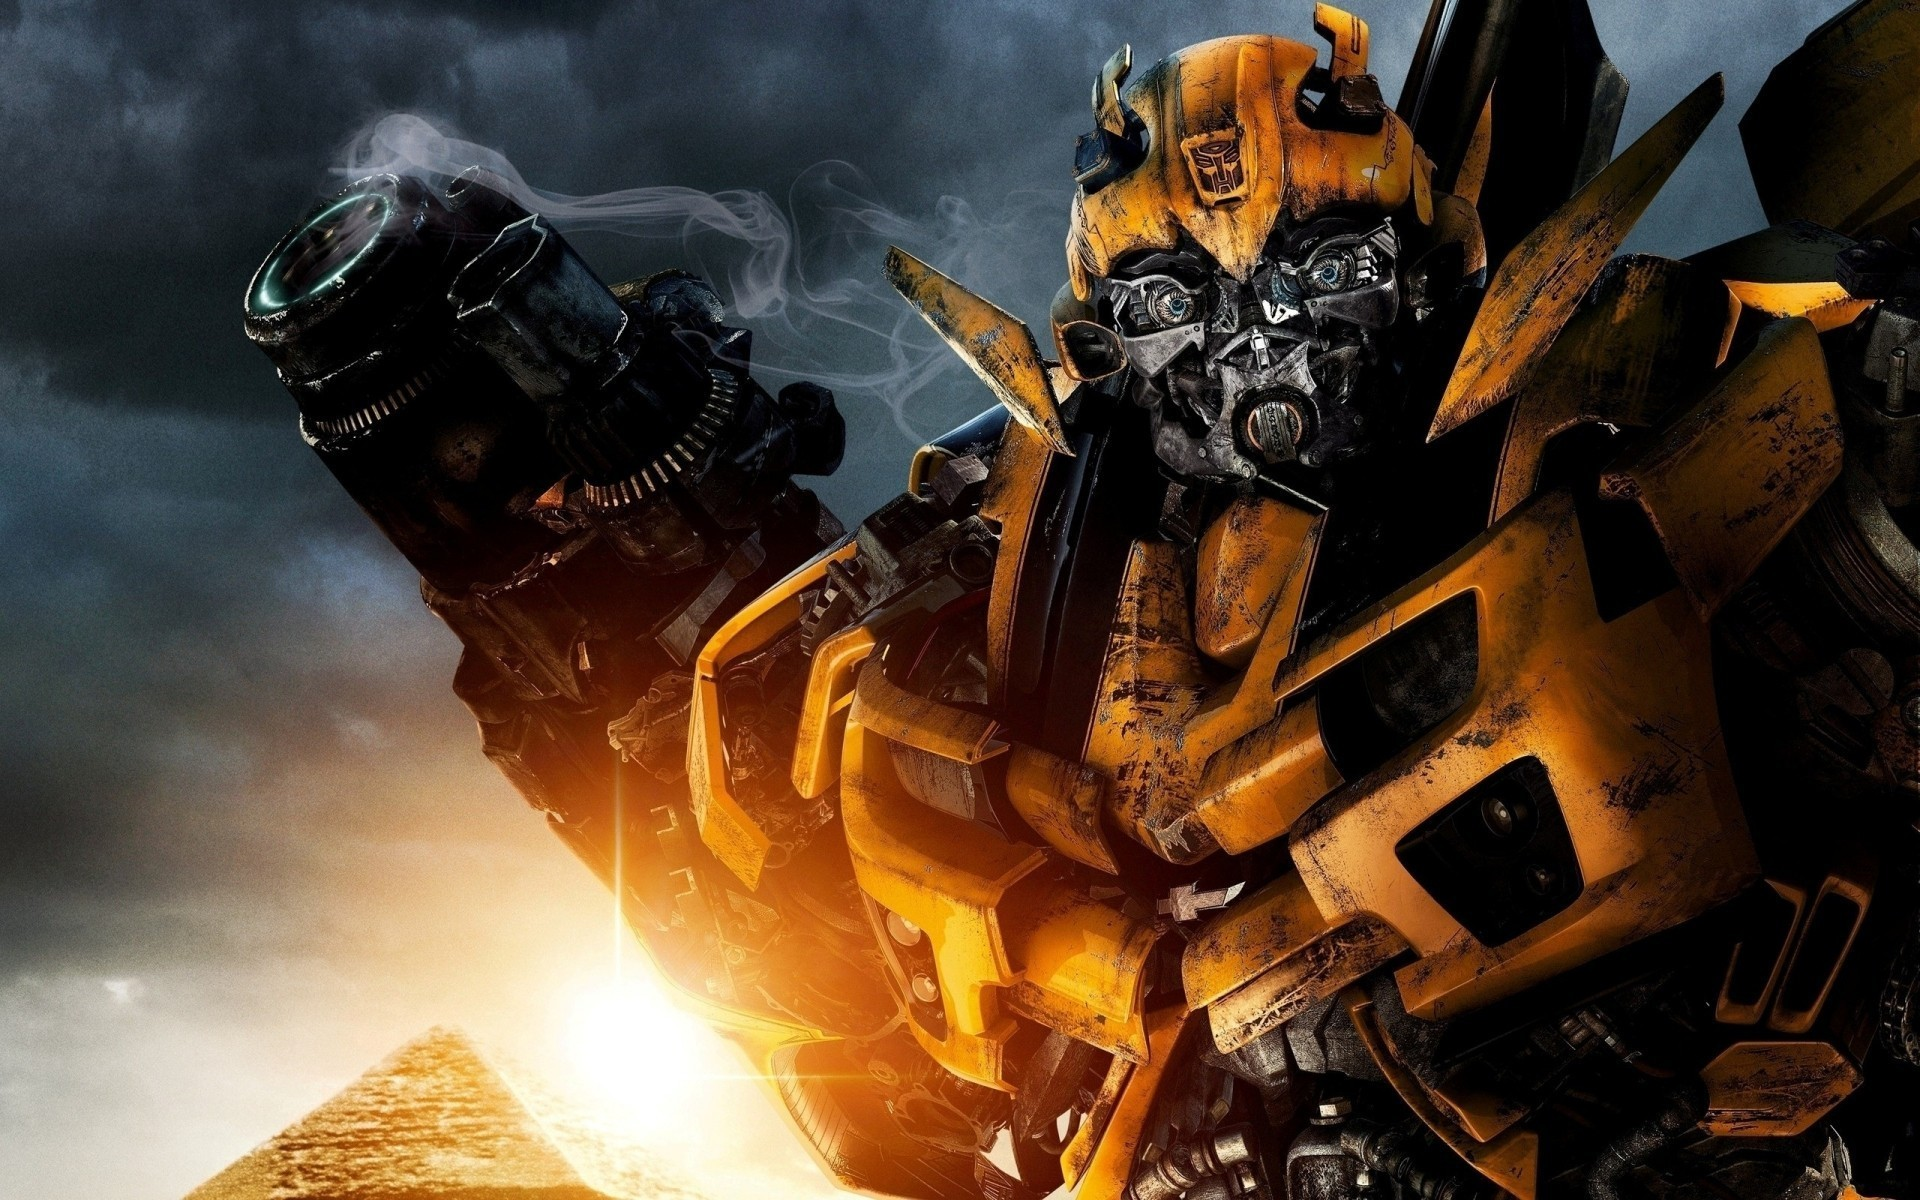 transformers 4 toys